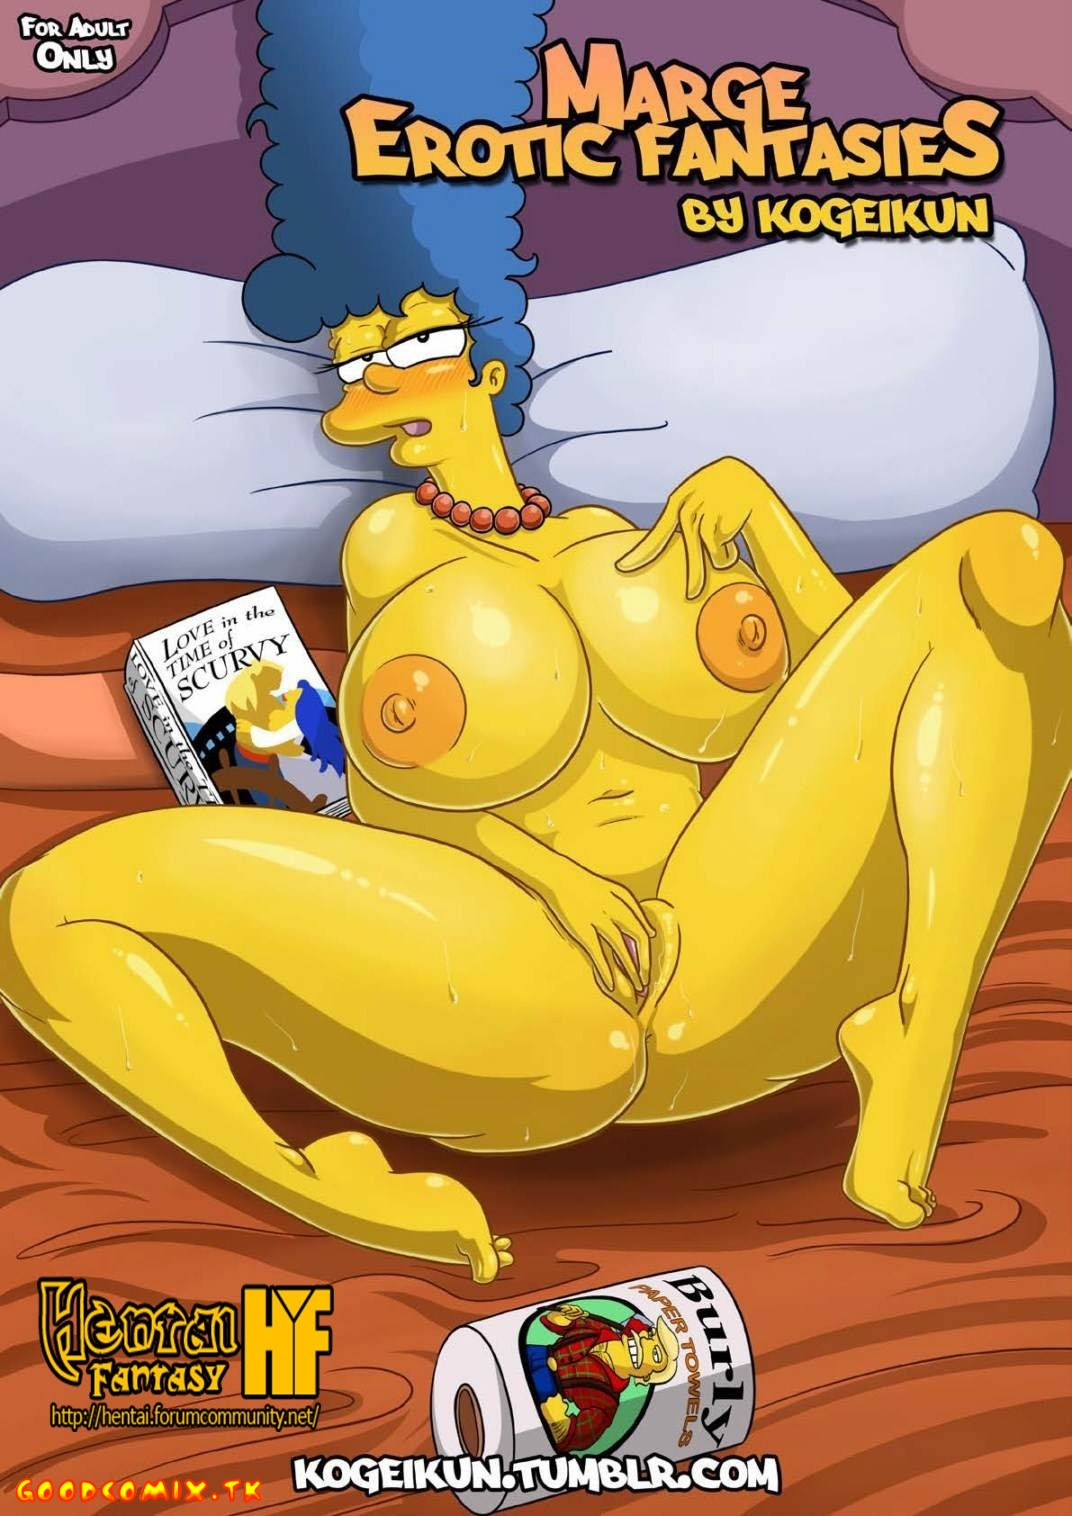 Goodcomix.tk The Simpsons - [Kogeikun] - Marge Erotic Fantasies - Le Fantasie Erotiche Di Marge